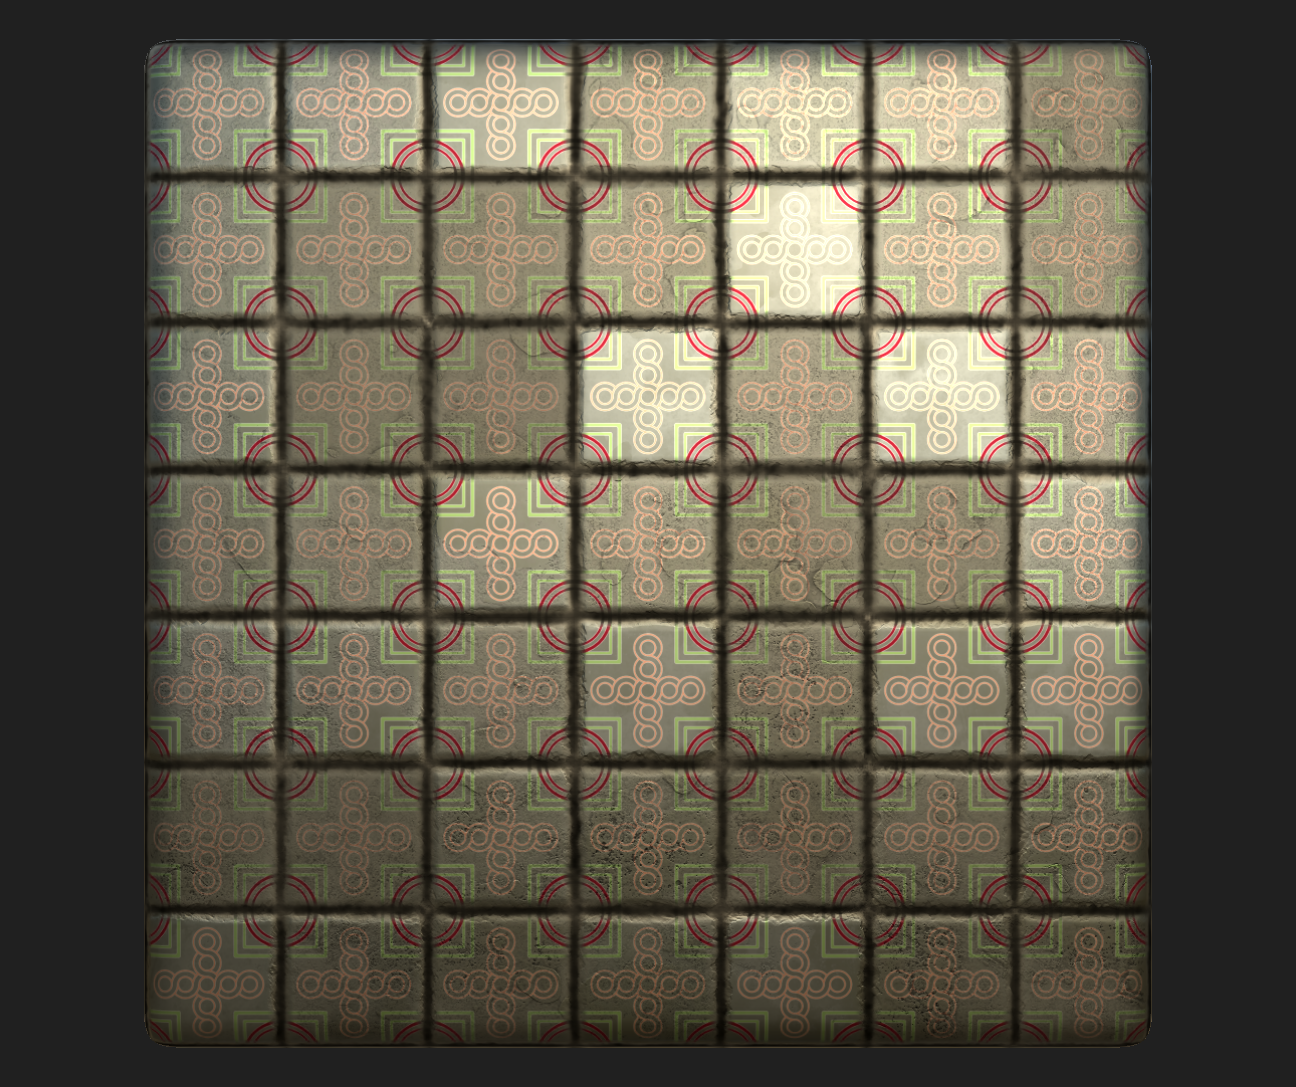 Tile_17_Pattern_09.png